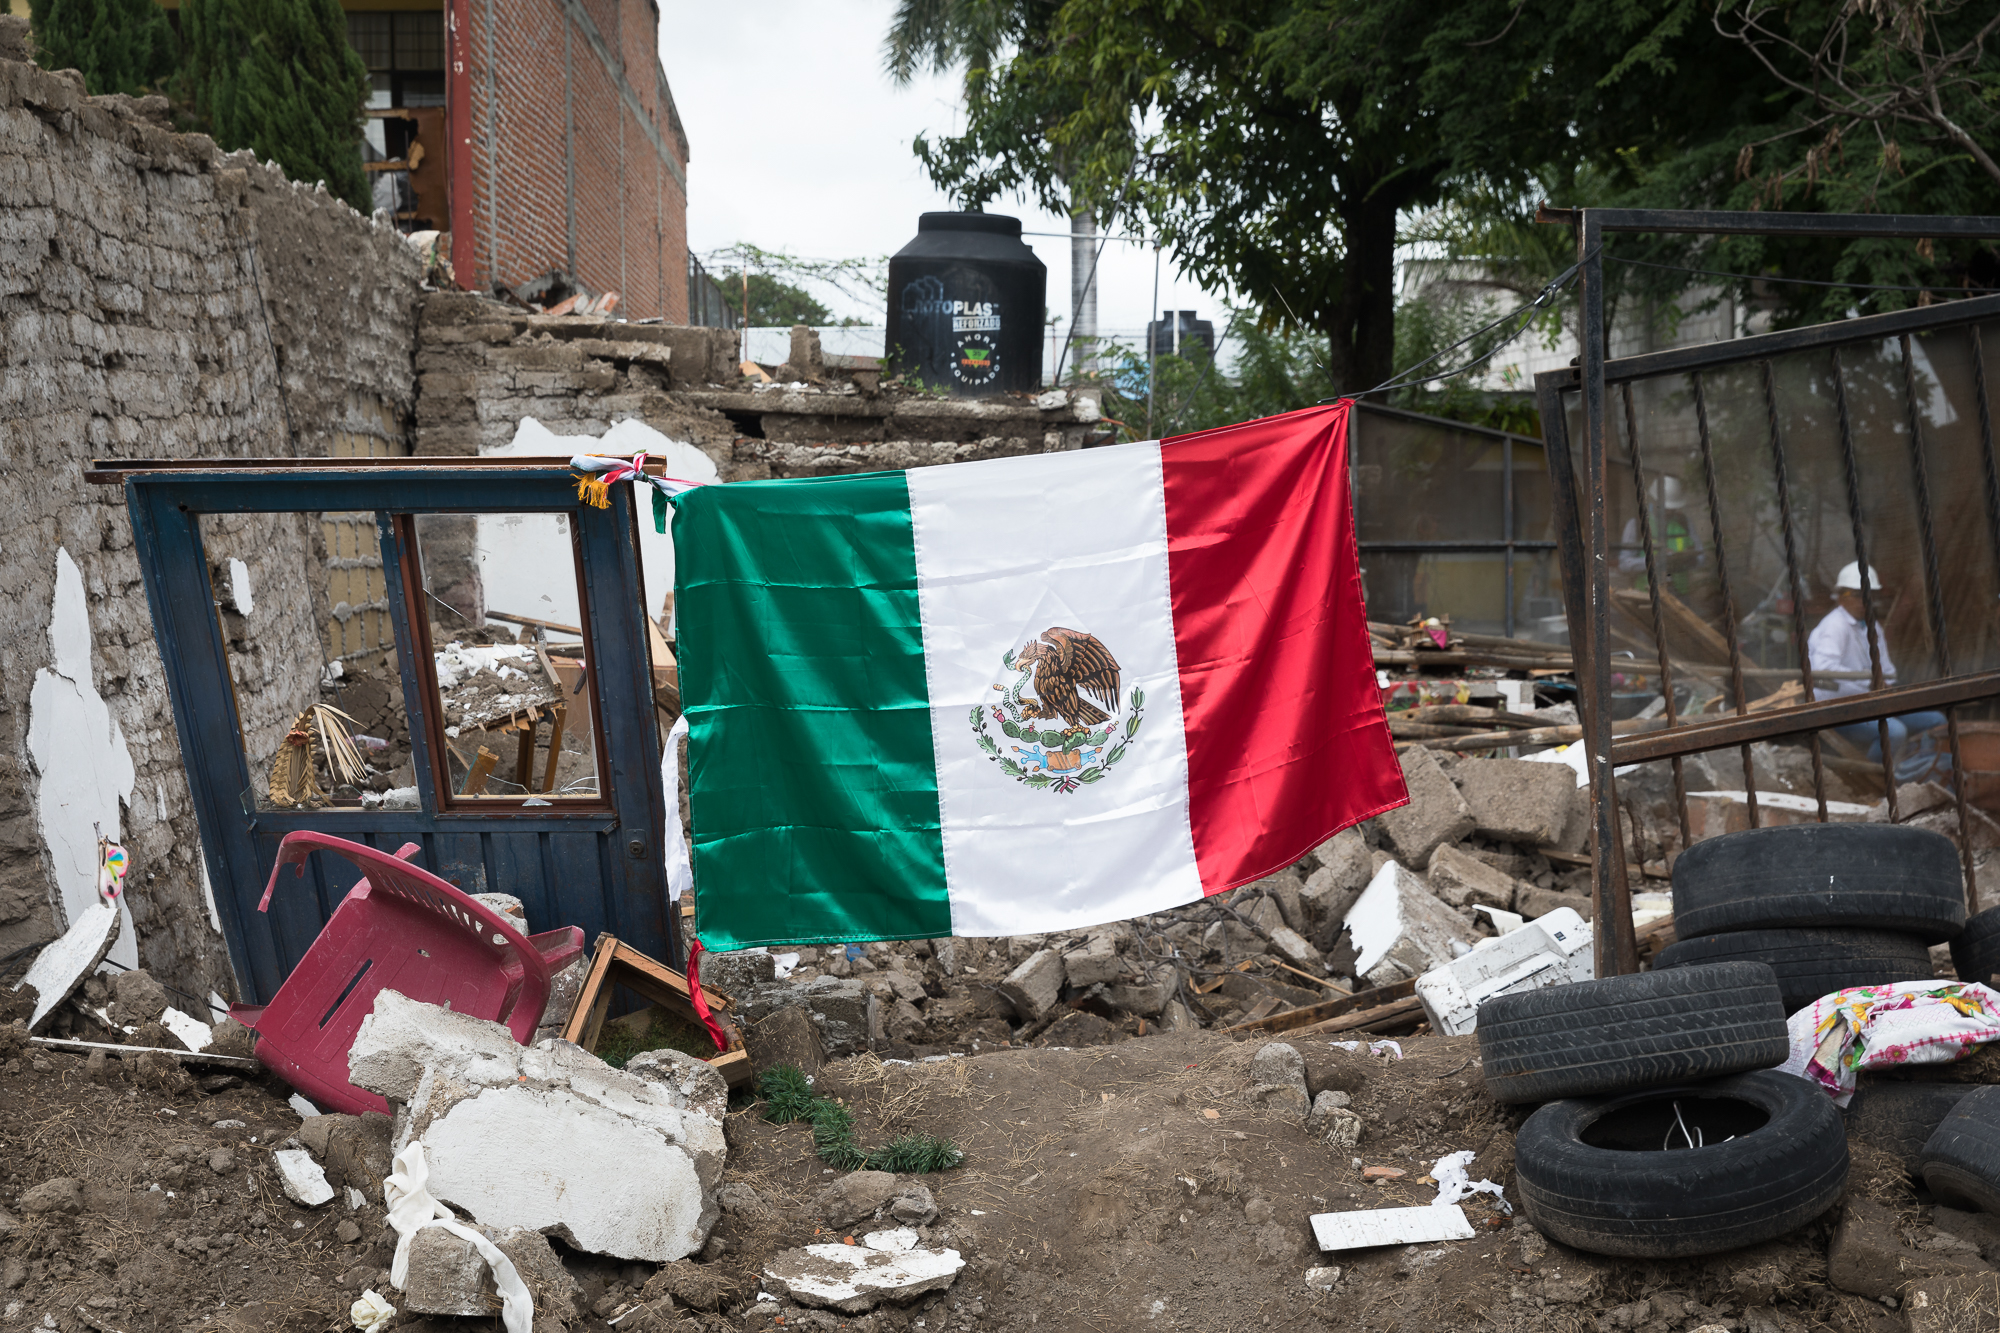 In the middle of the deep crisis, people still believe in their beloved nation, Mexico. PHOTO: Francisco Alcala Torreslanda